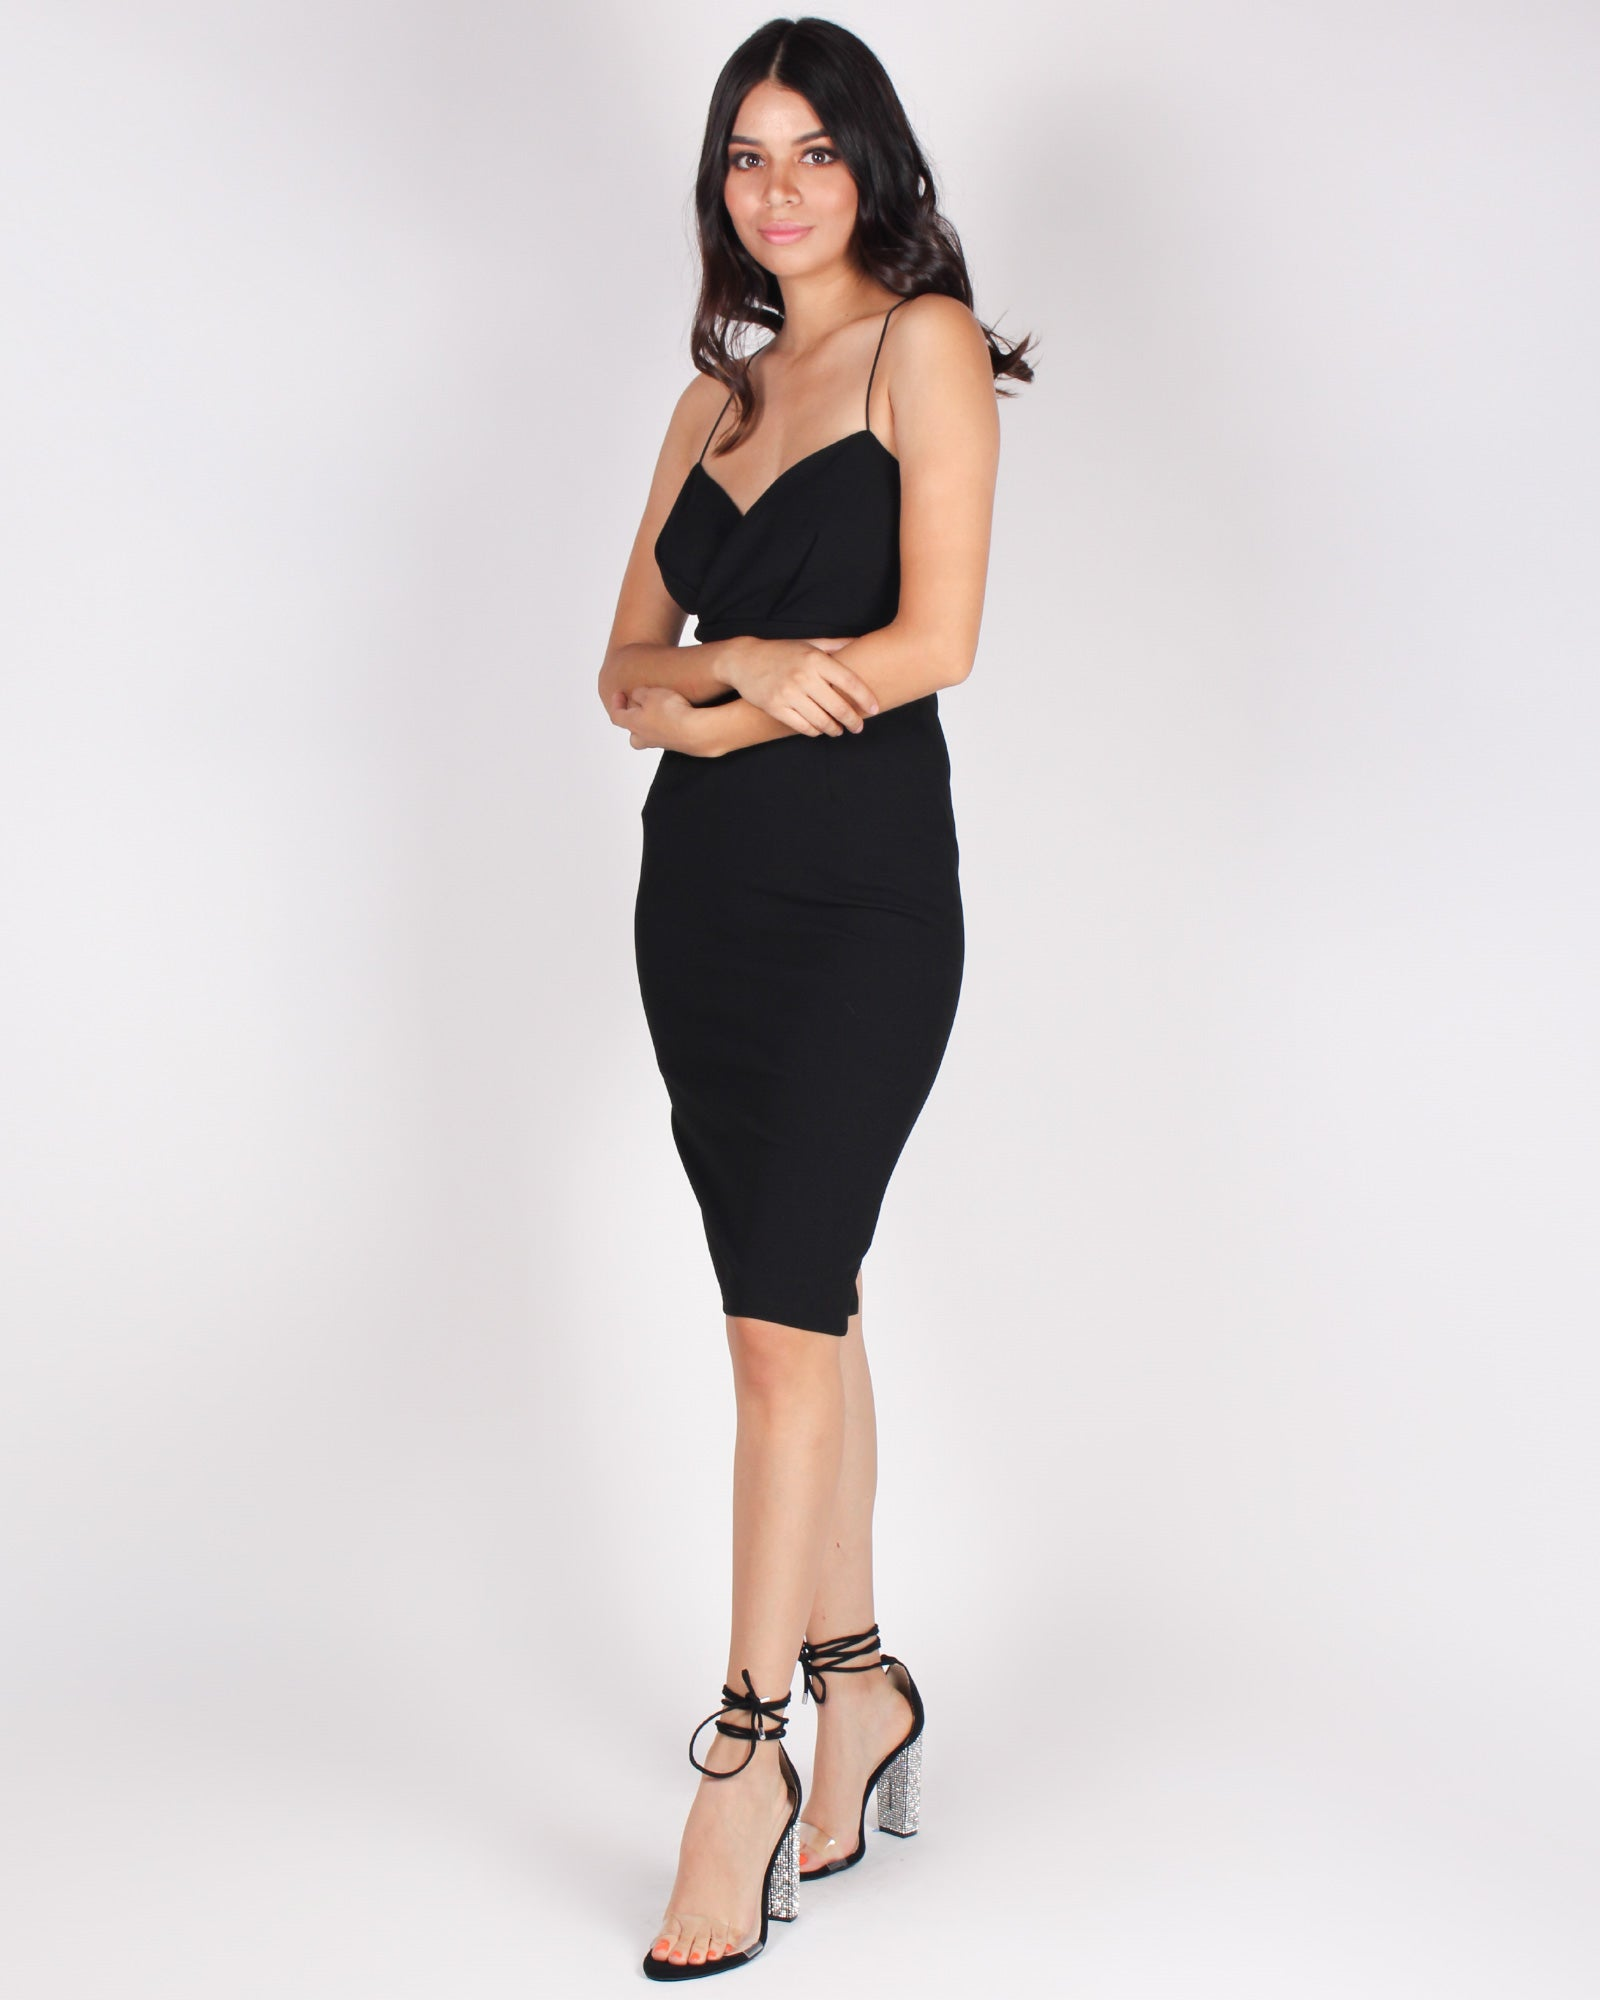 Fashion Q Shop Q Cheers to the Night Bodycon Dress (Black) HMD12081